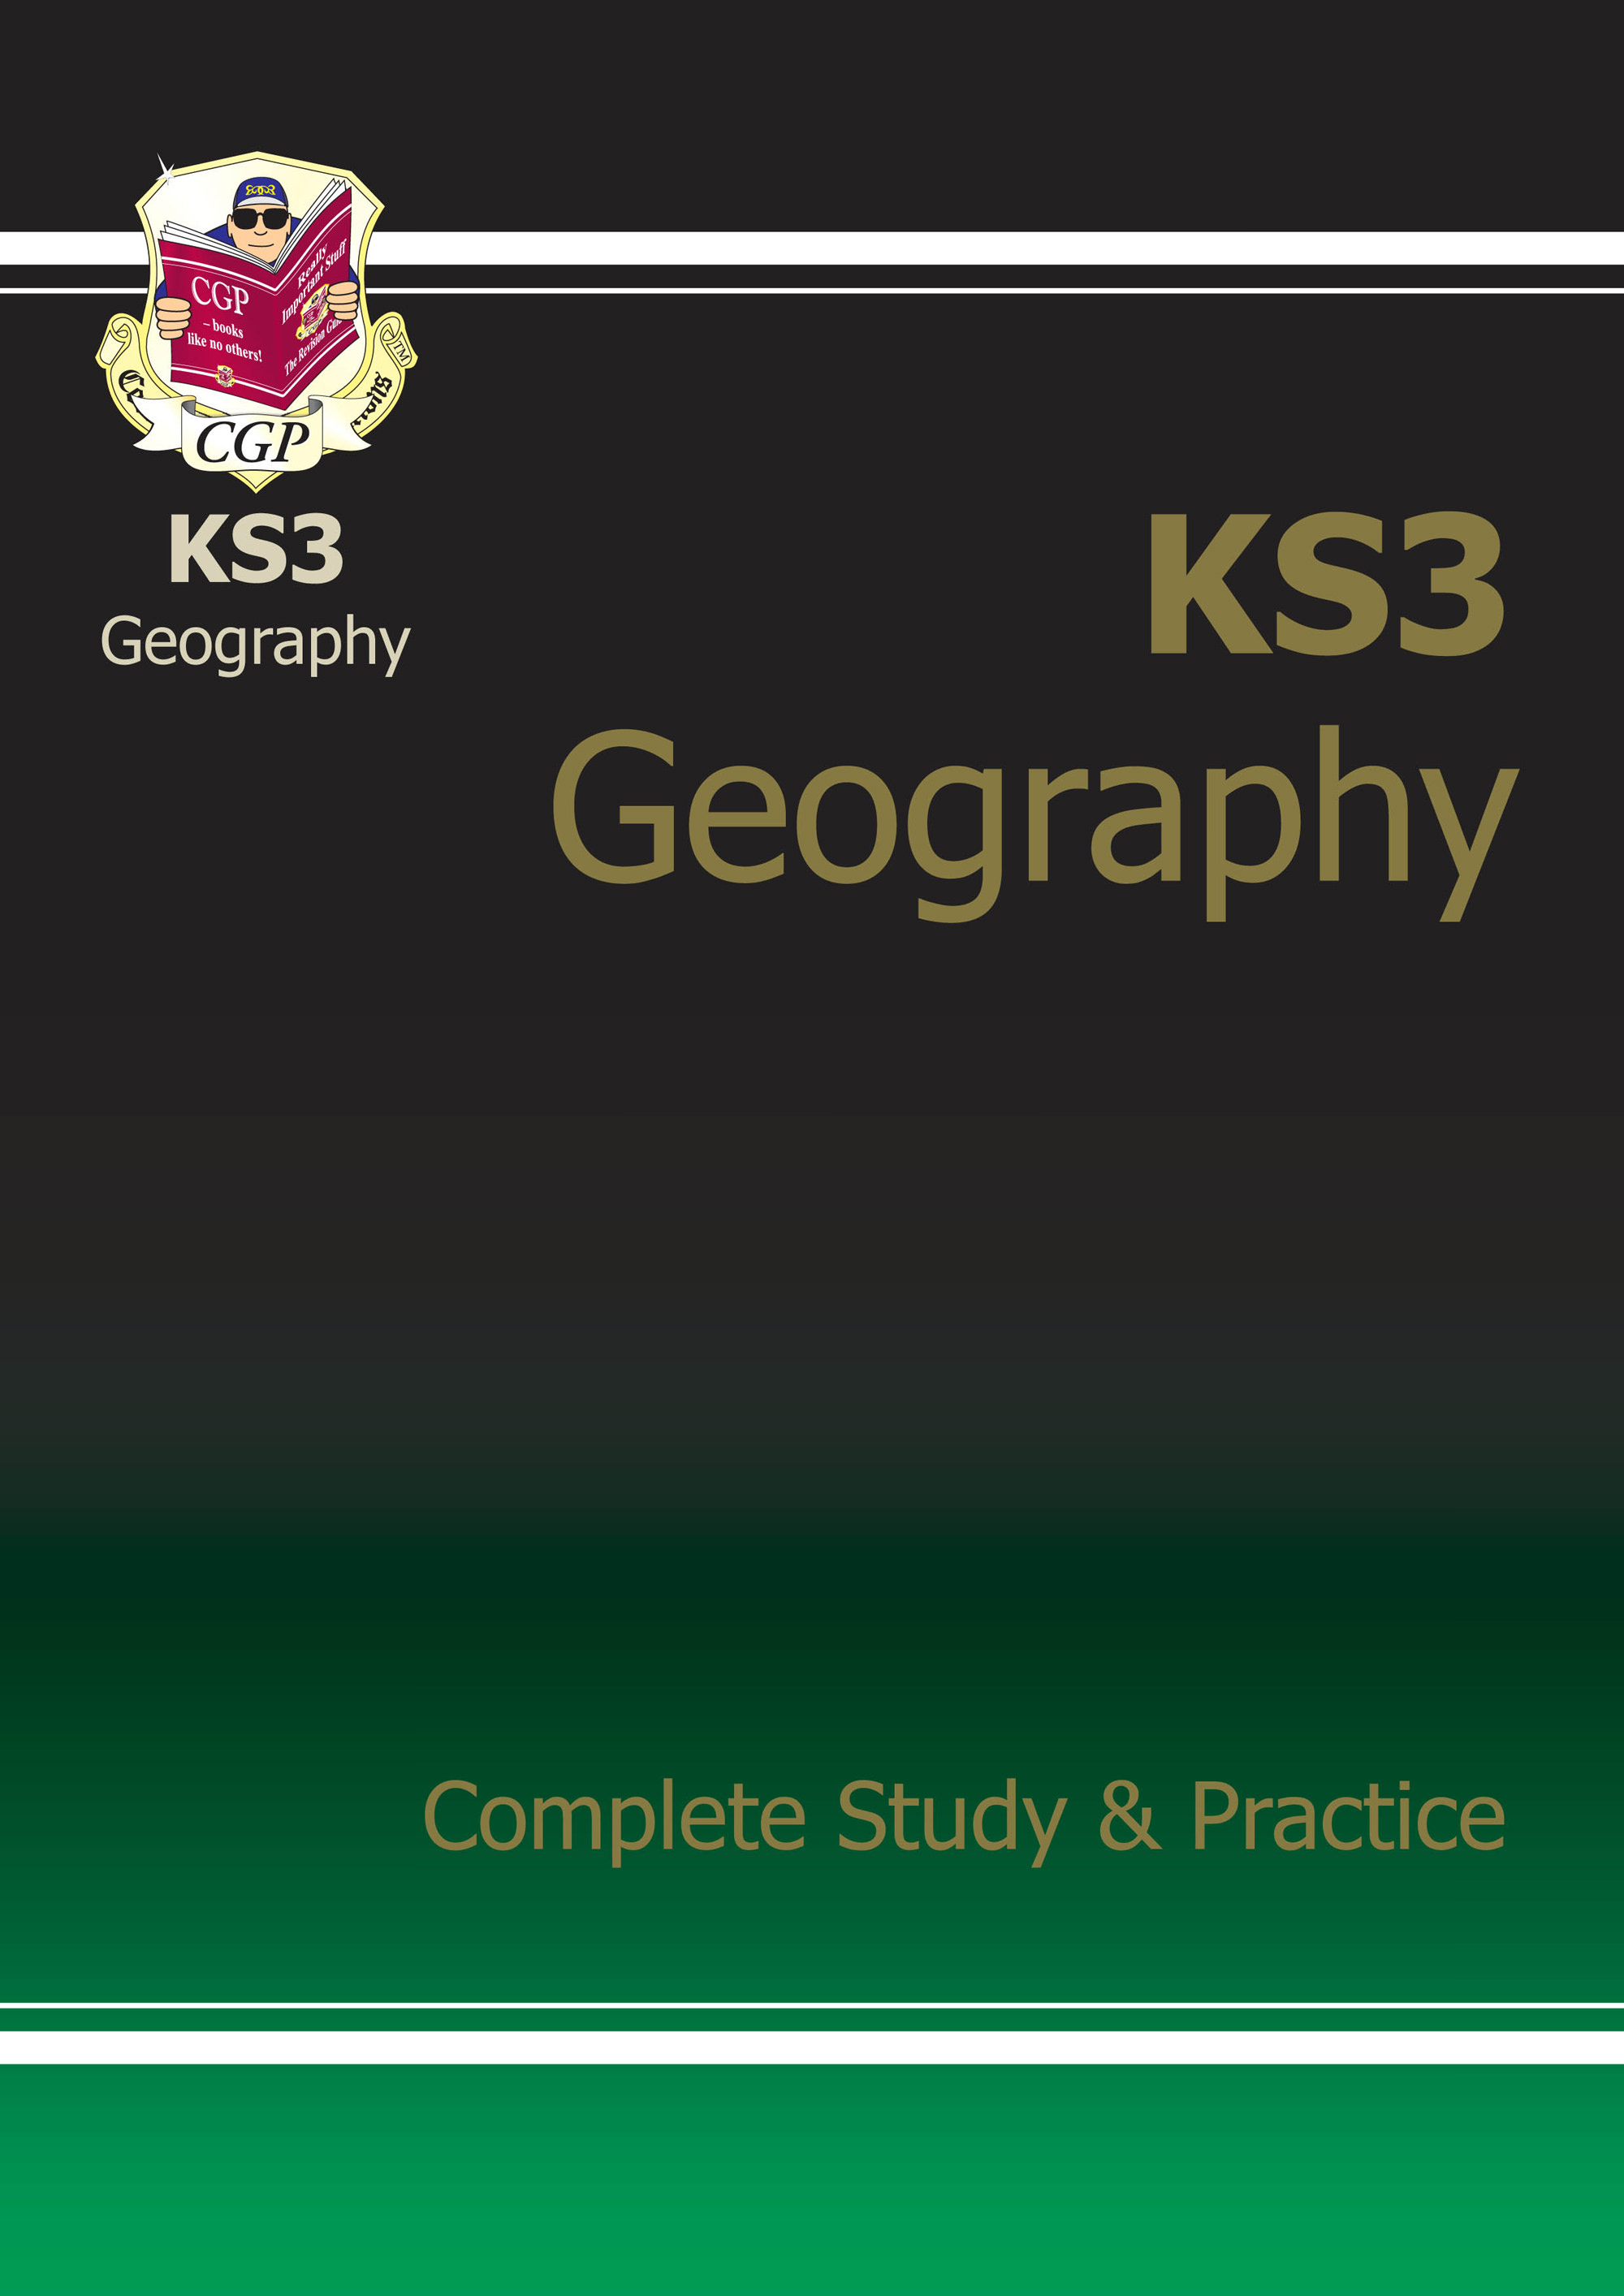 GHS33DK - KS3 Geography Complete Study & Practice